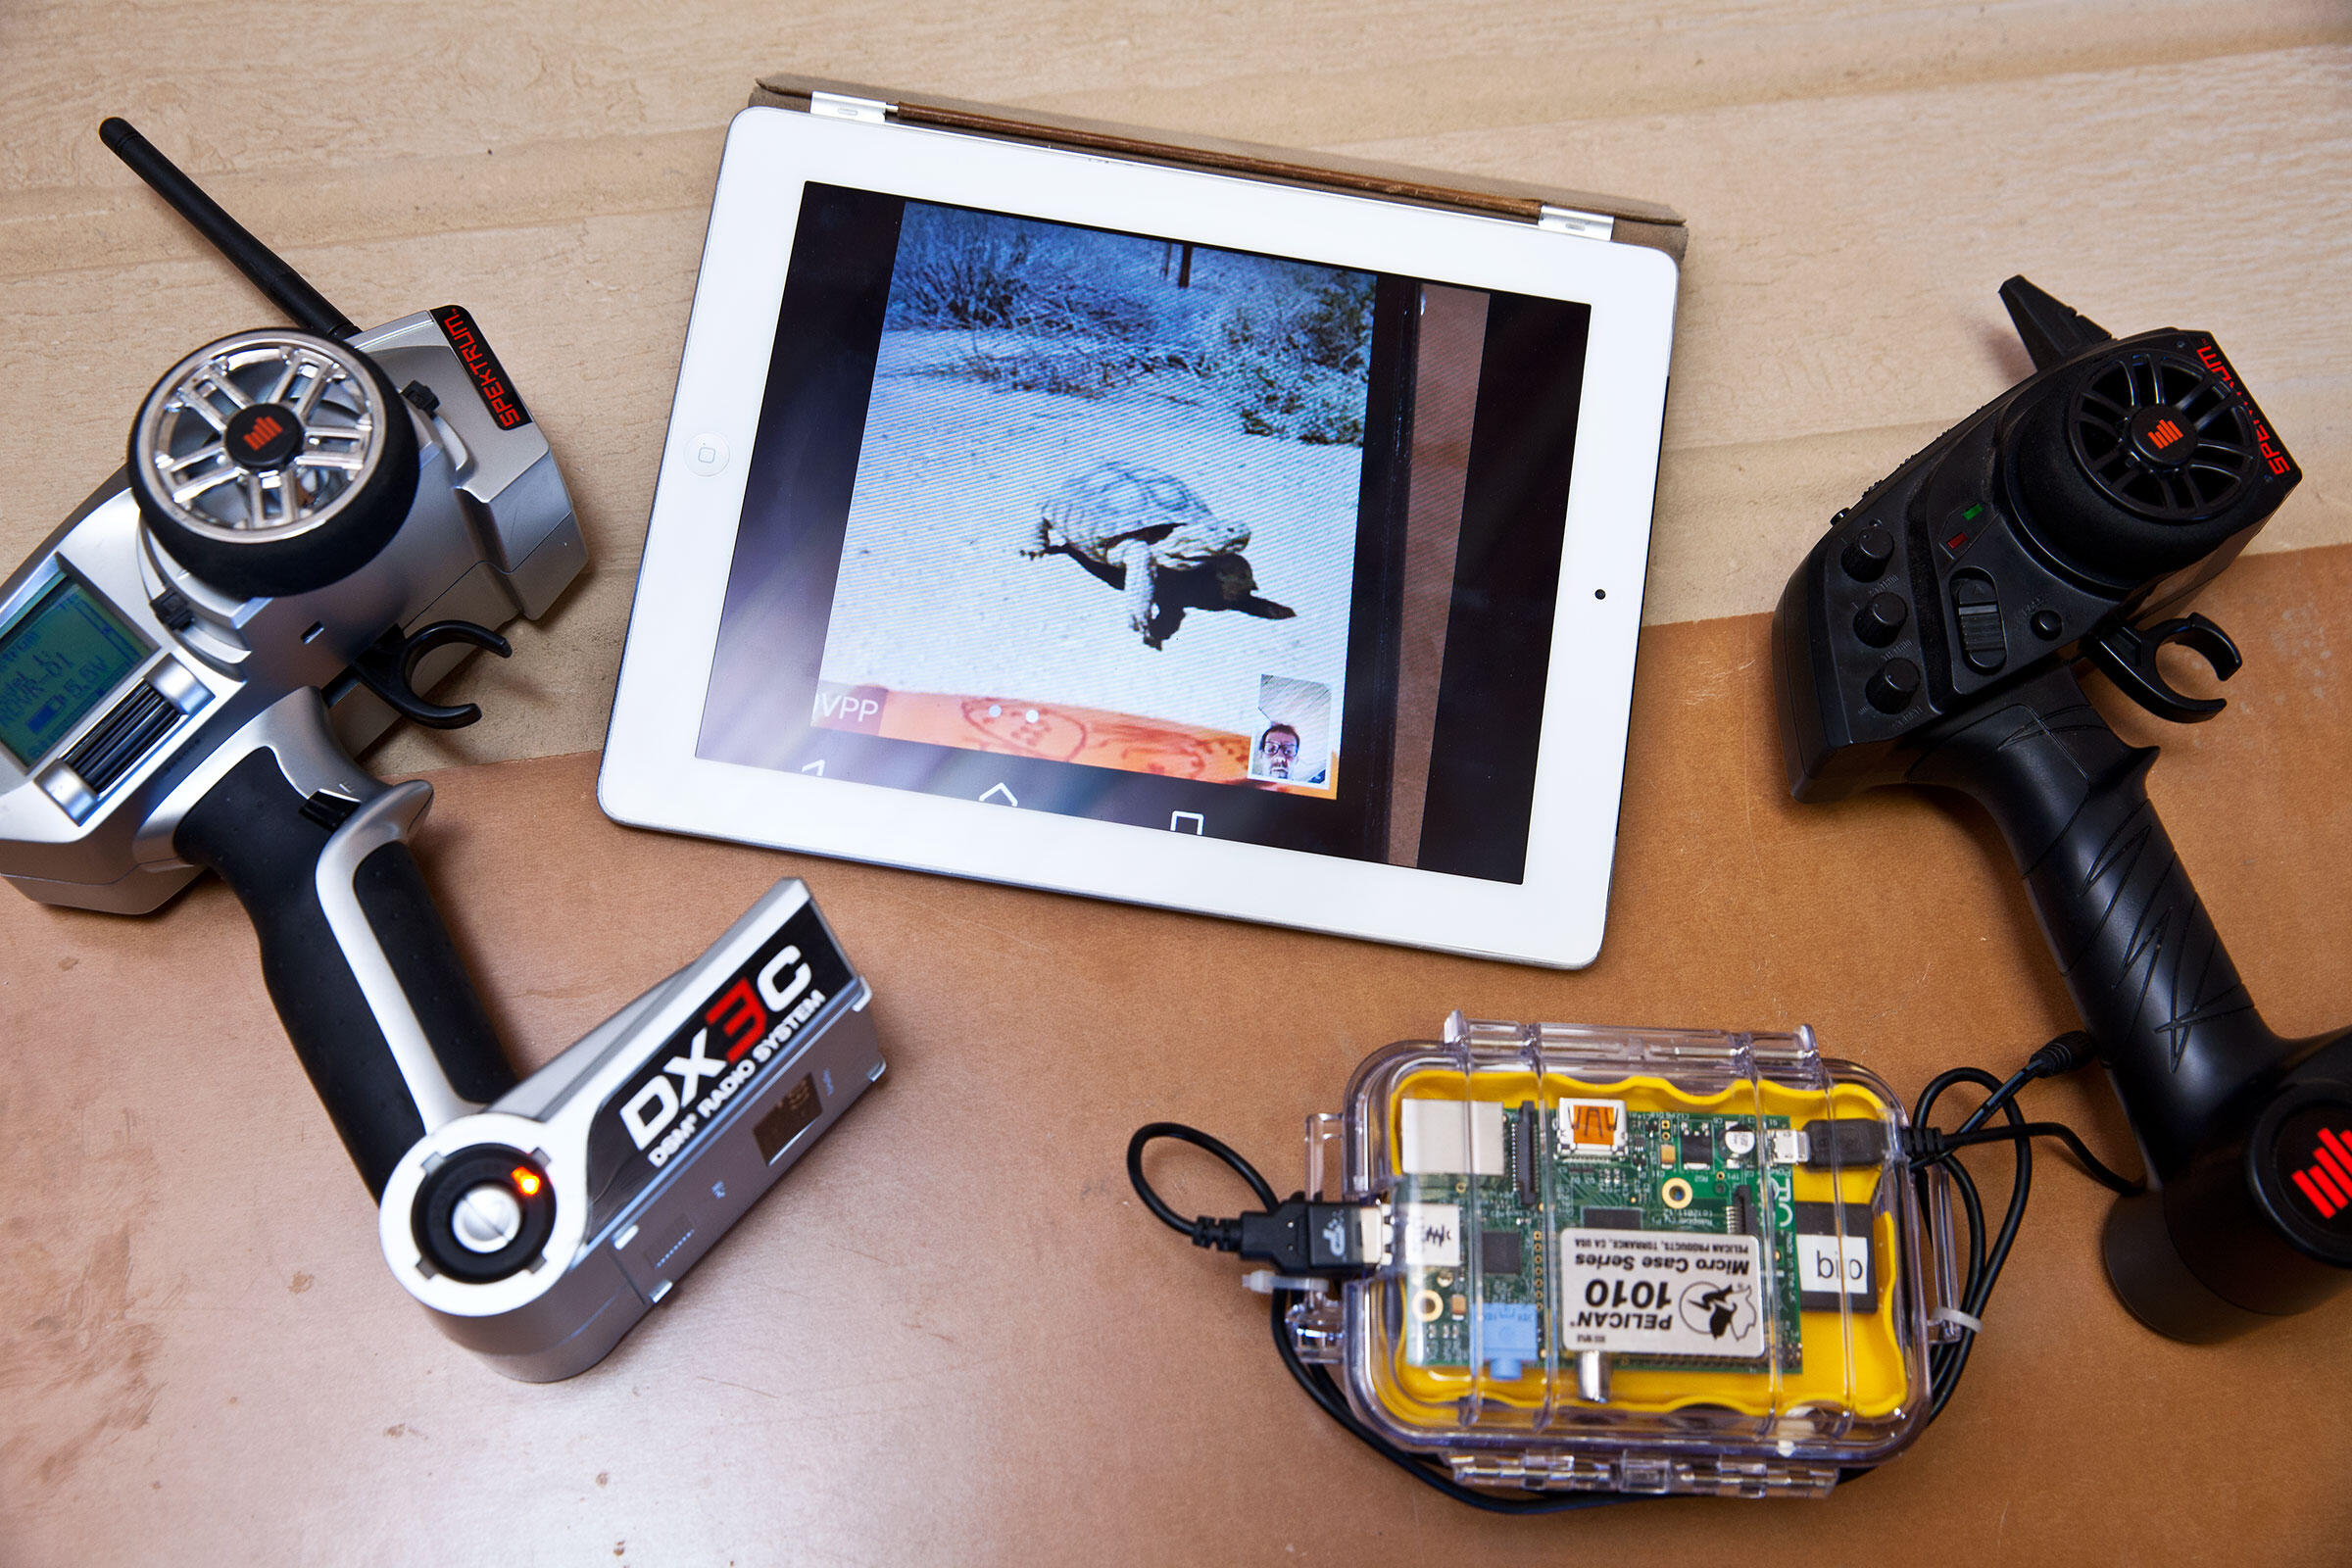 Rover controls and a tablet for remote monitoring. Tom Fowlks